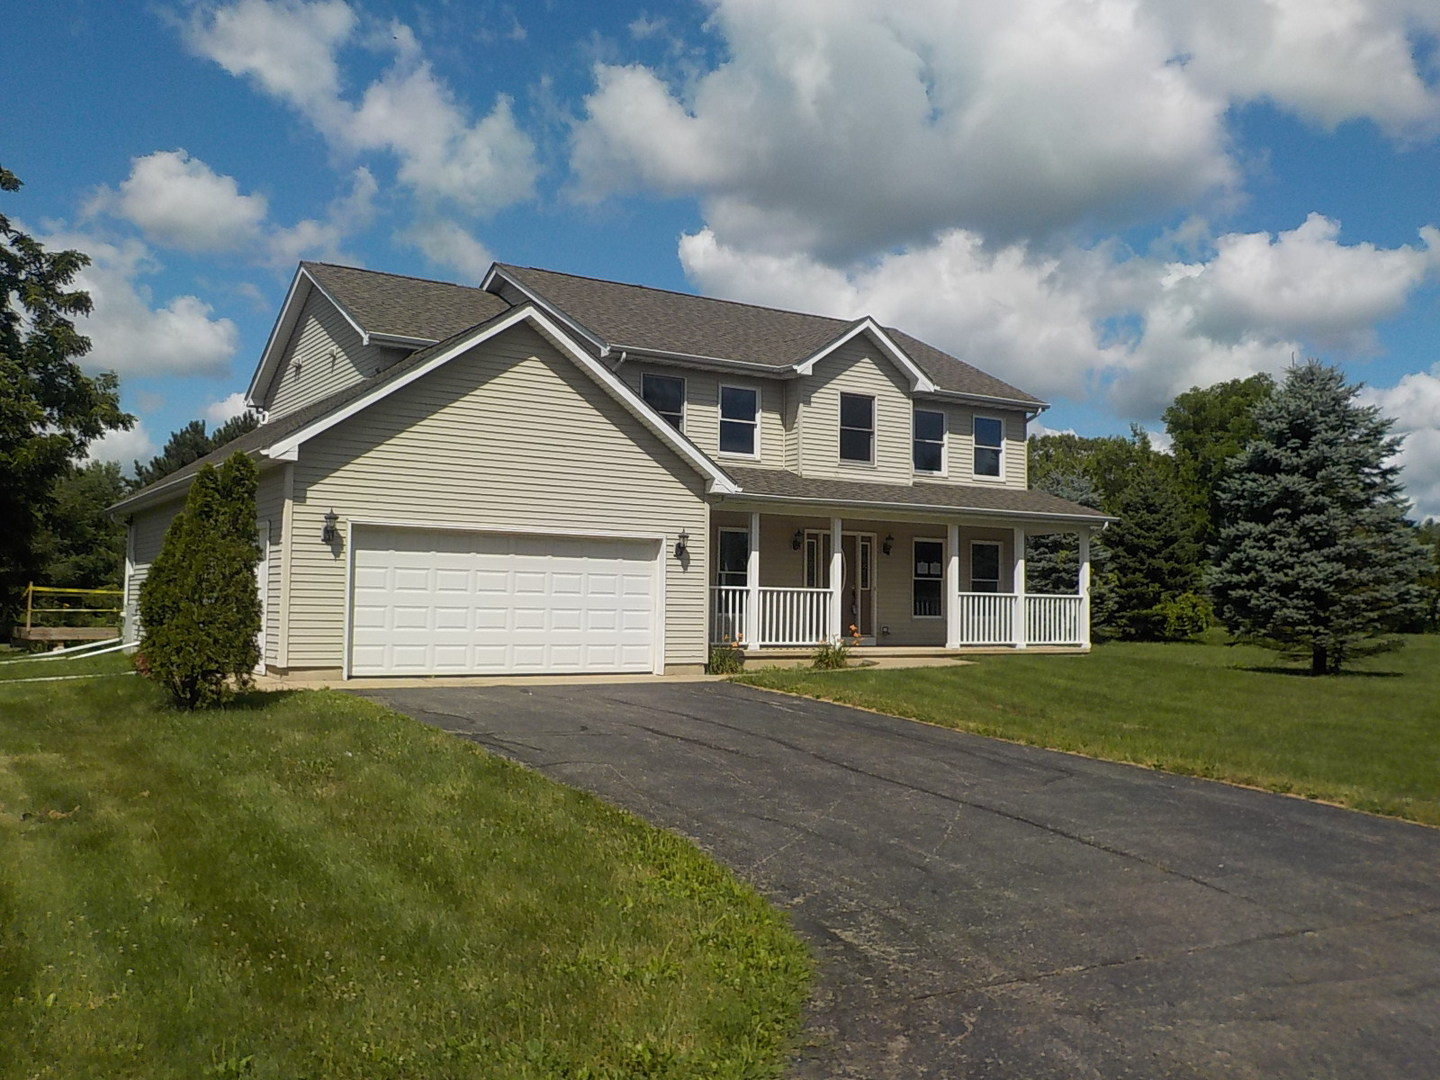 Photo for 3903 N Il Route 47, Woodstock, IL 60098 (MLS # 10483312)